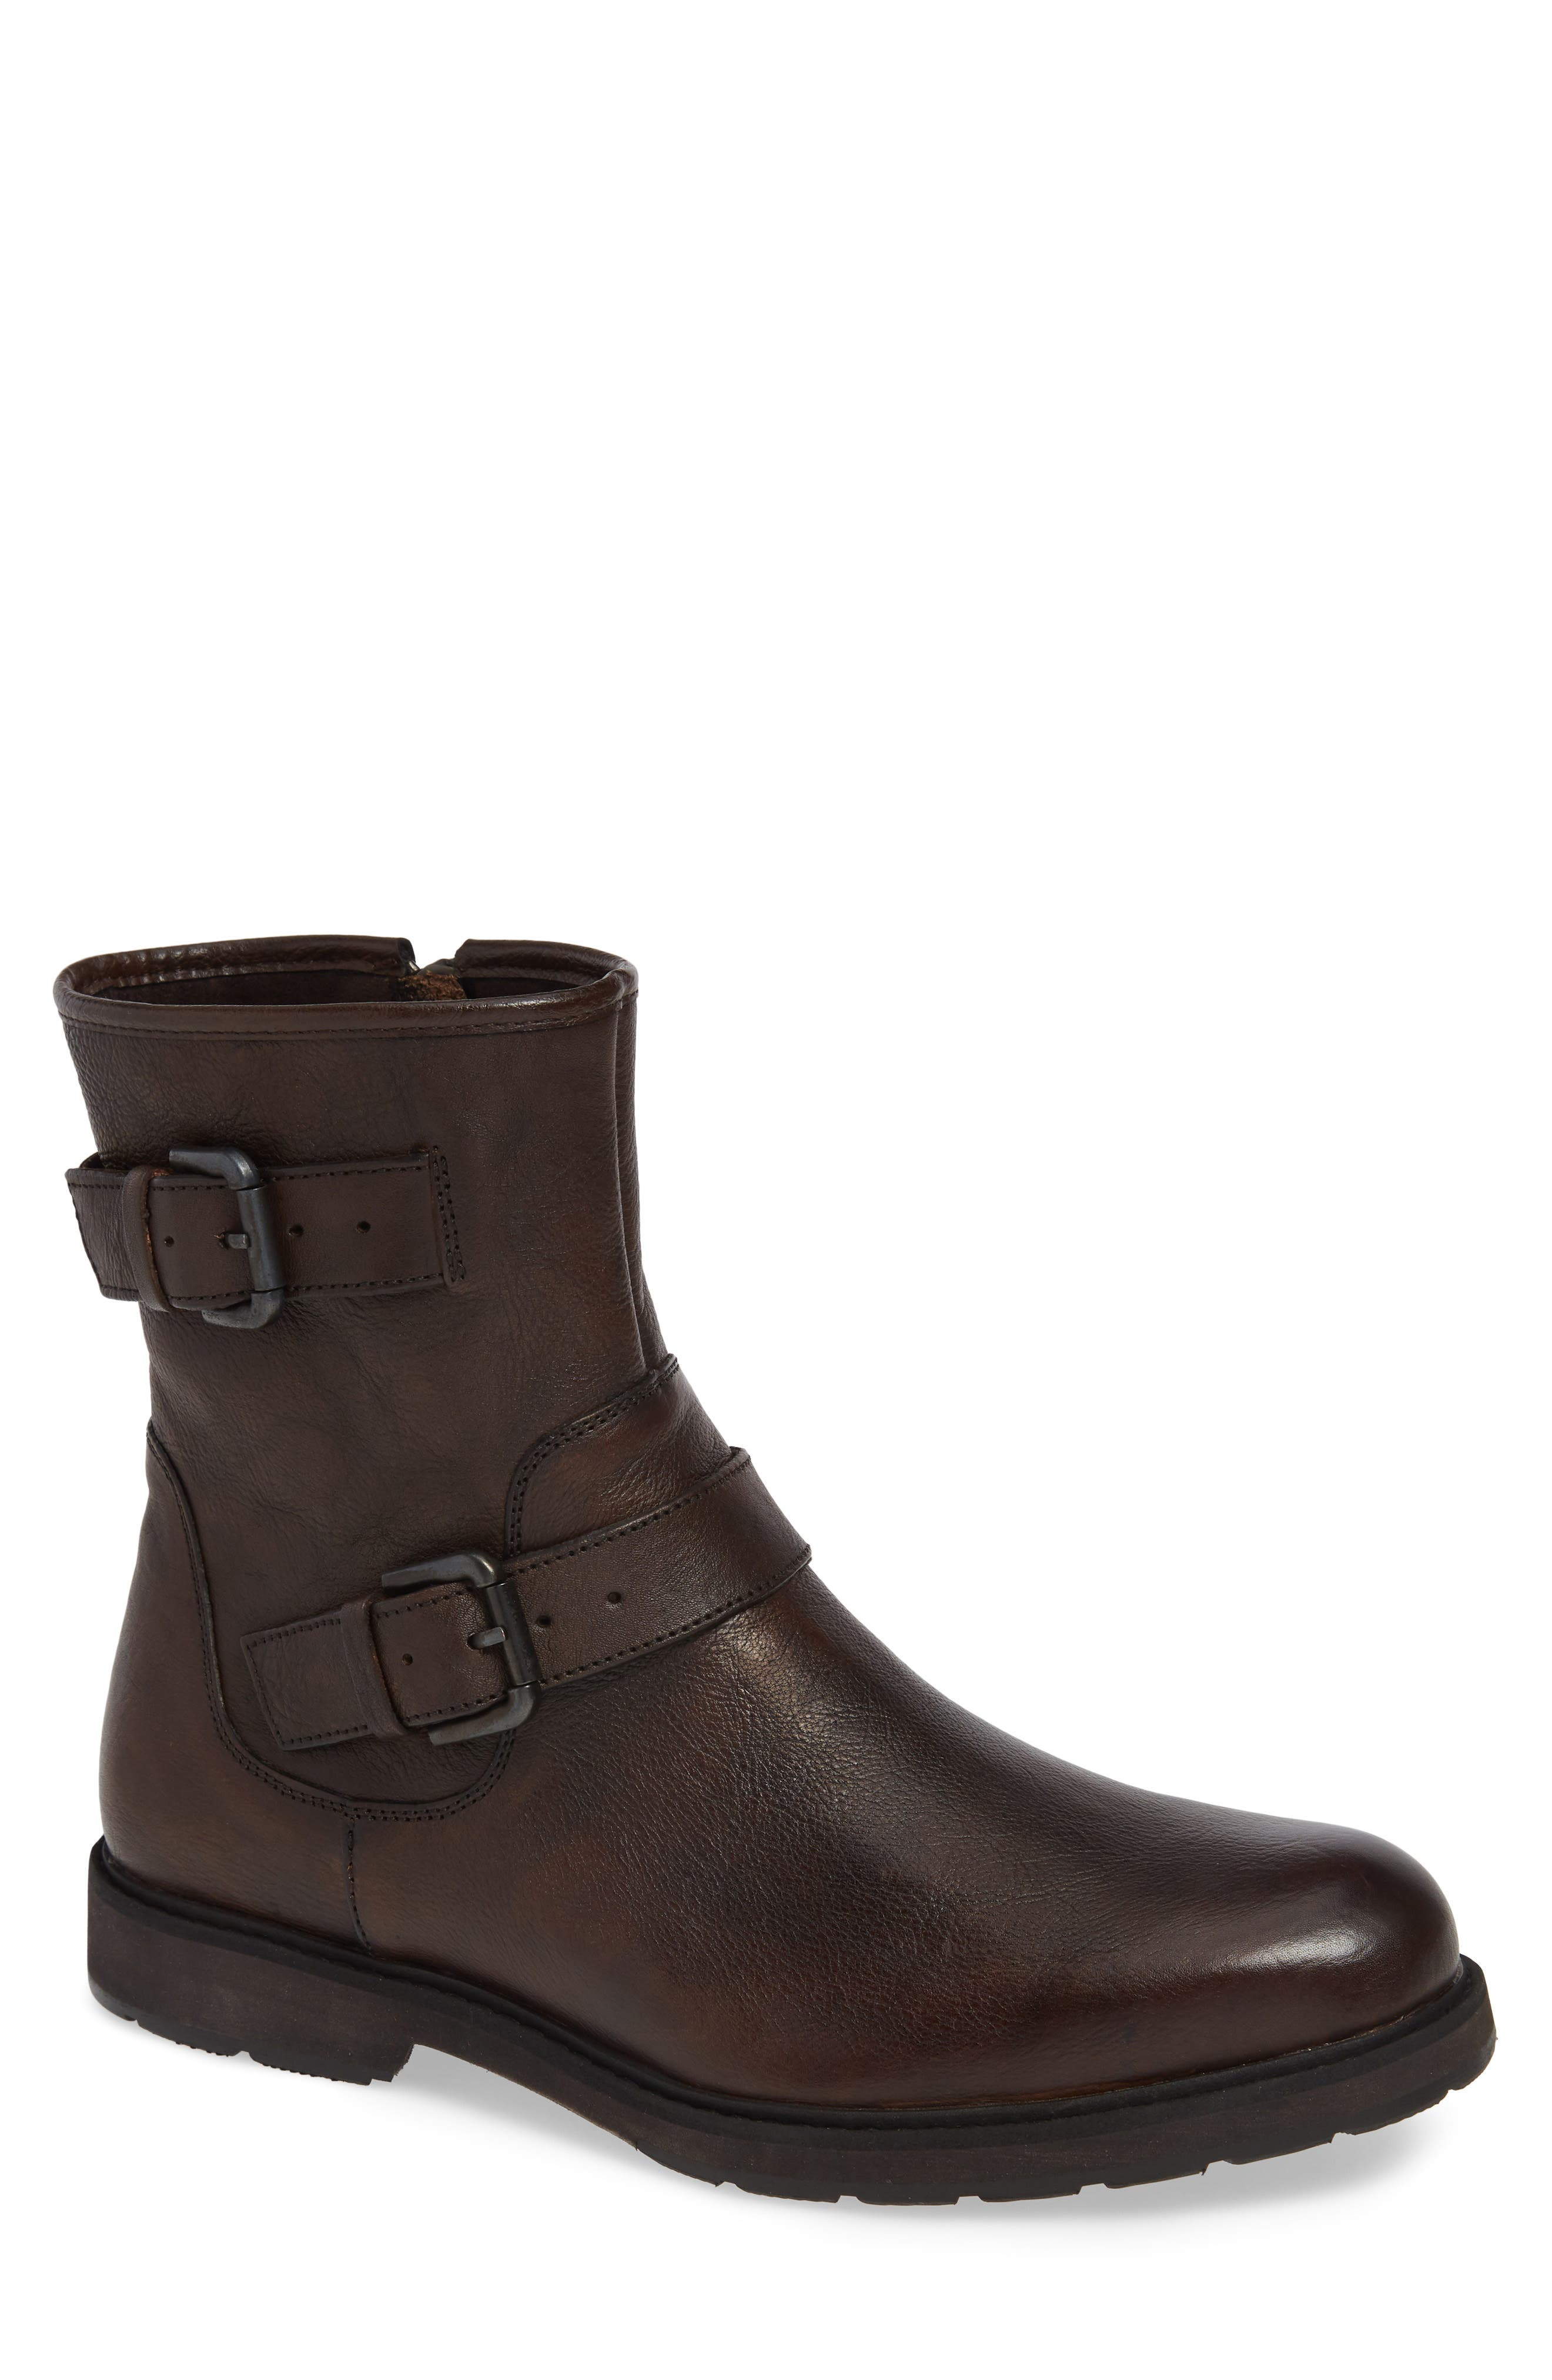 Drue Engineer Boot,                         Main,                         color, 200